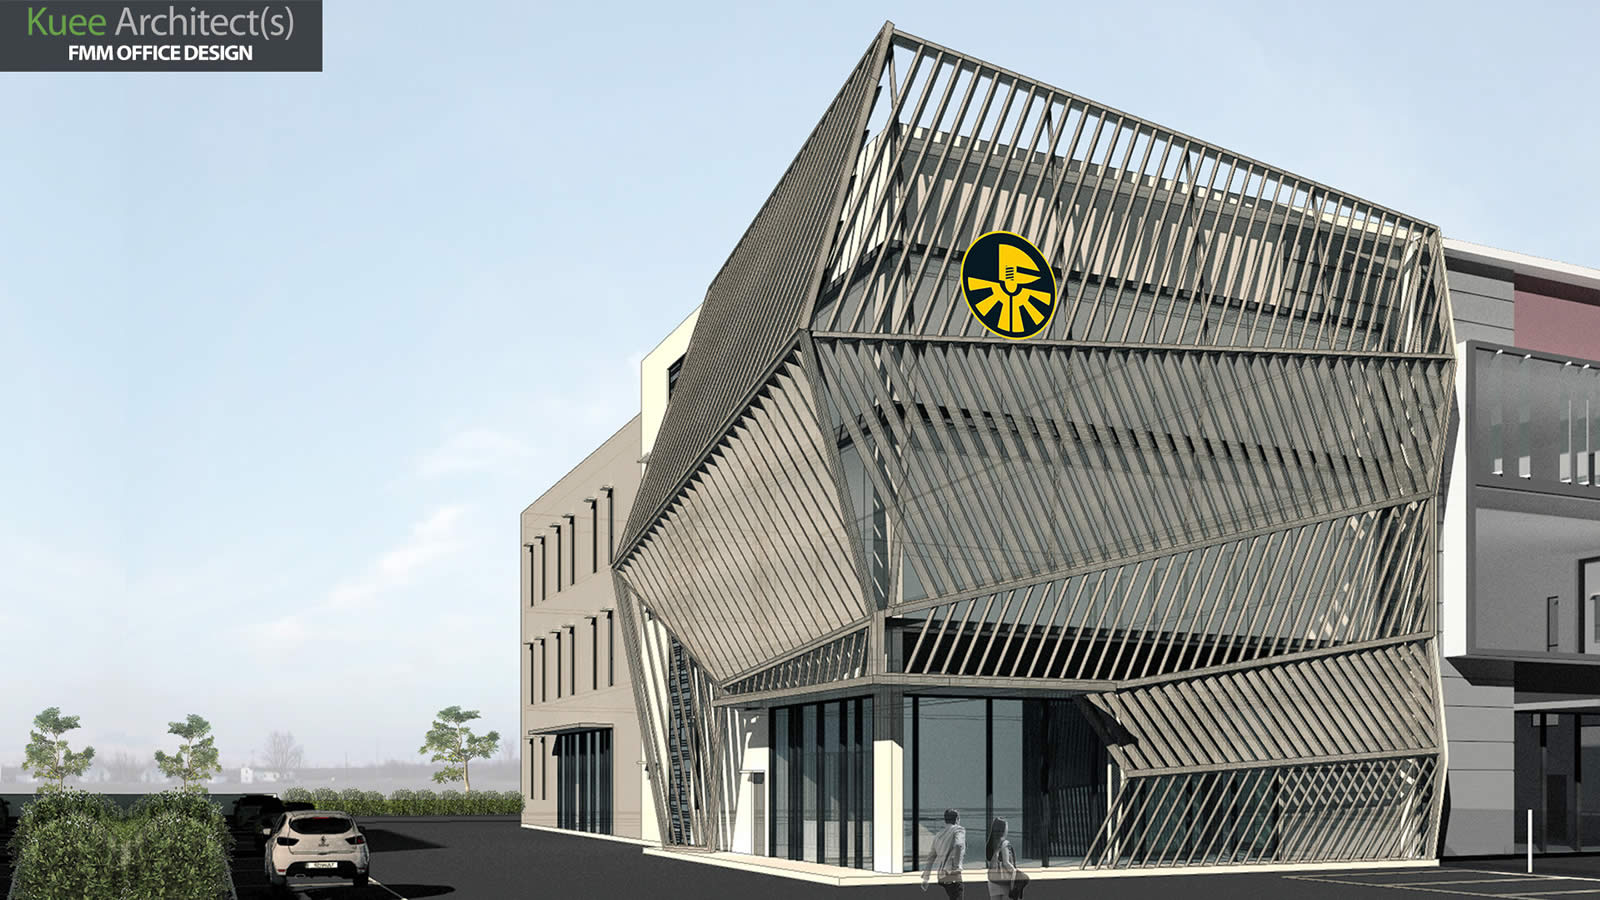 Commercial office architecture design-FMM in Selangor Kuee Architect